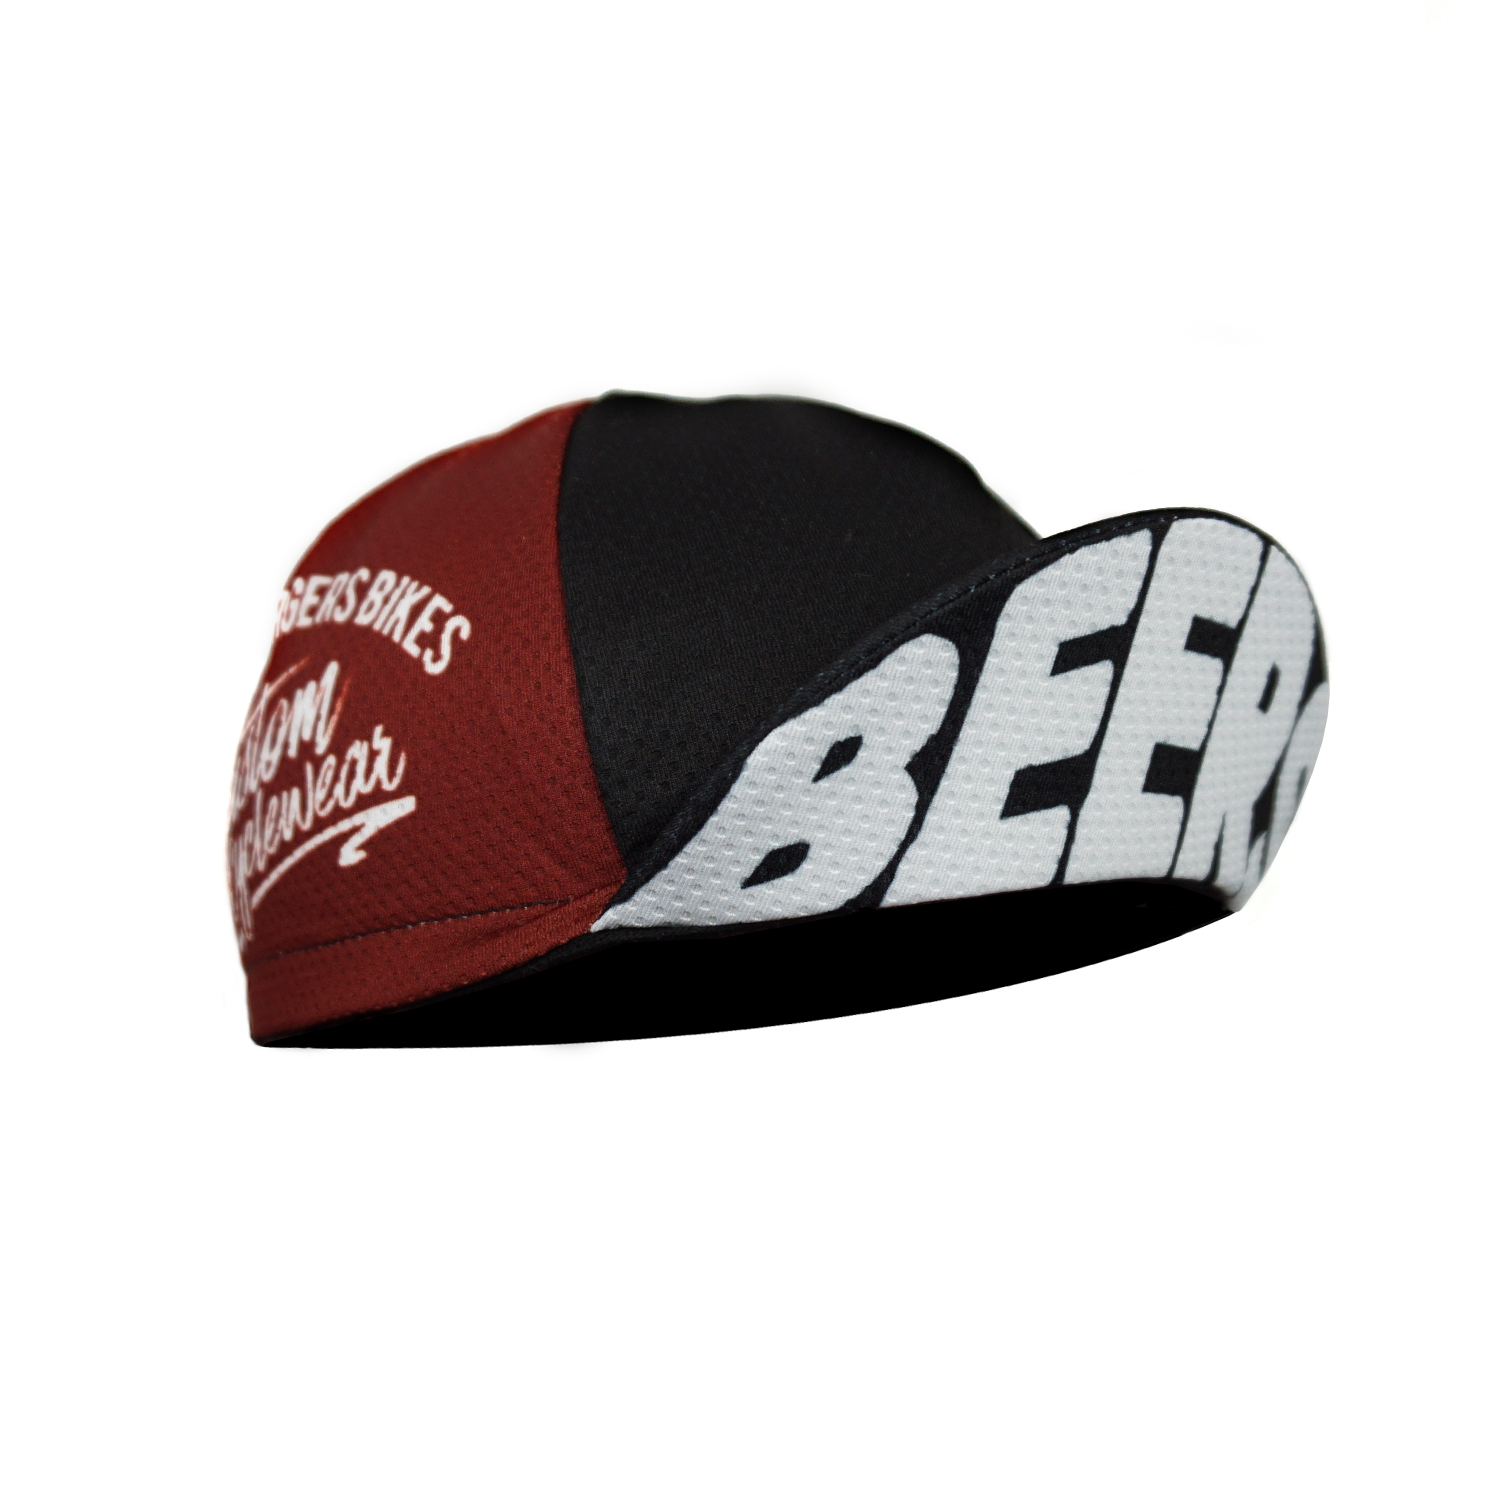 Beers Burgers Bikes — Red Fade Beers Cap dc8dd4a1918b